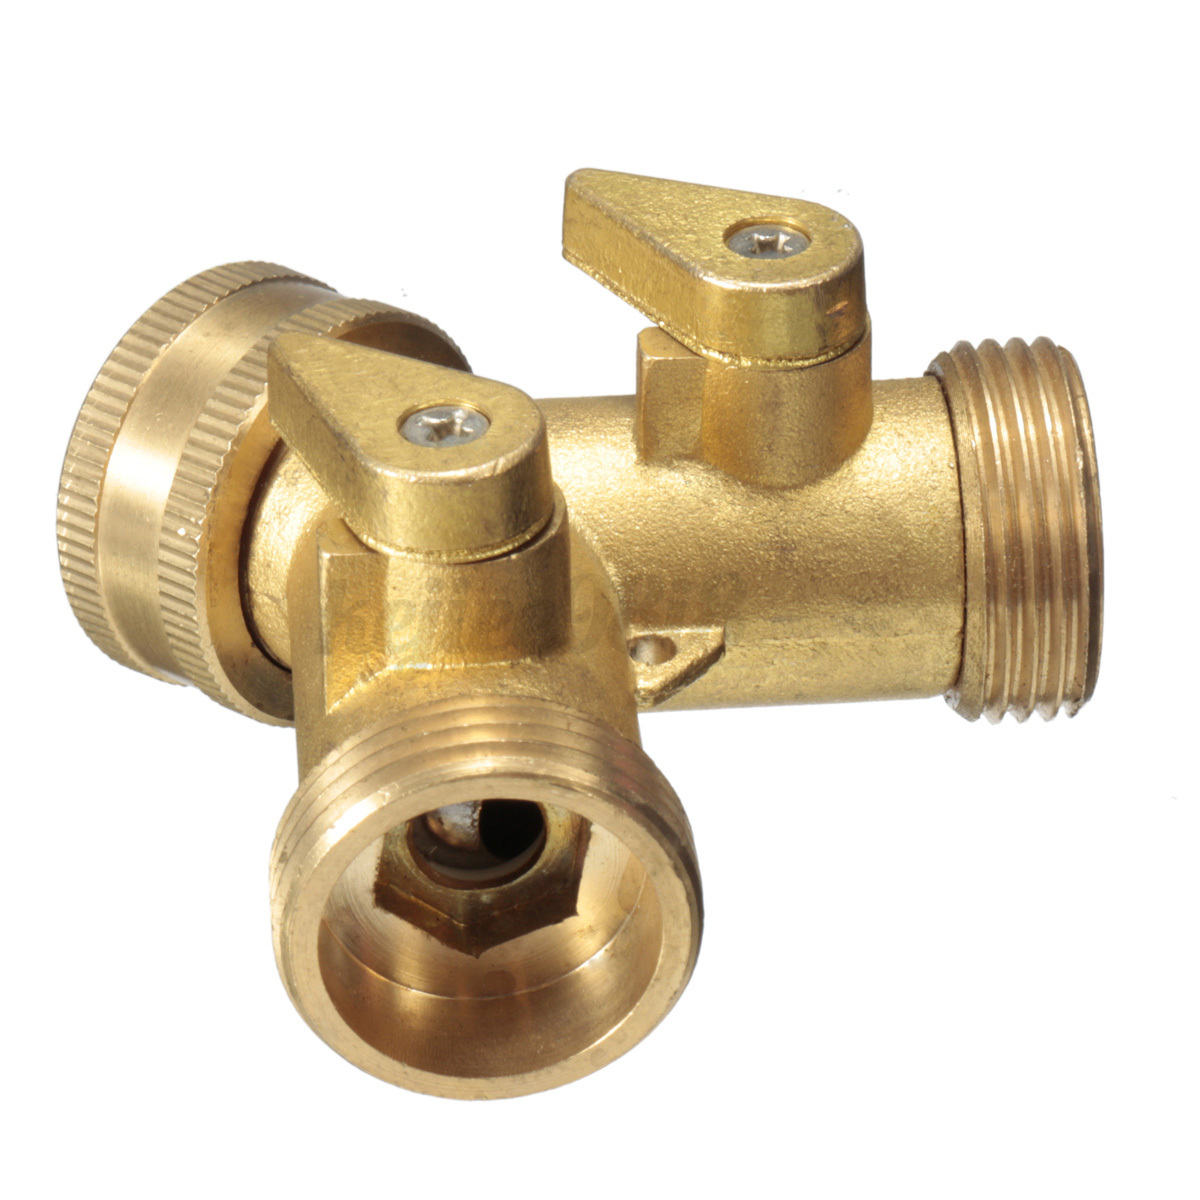 3 4 solid brass double two way garden tap connector. Black Bedroom Furniture Sets. Home Design Ideas